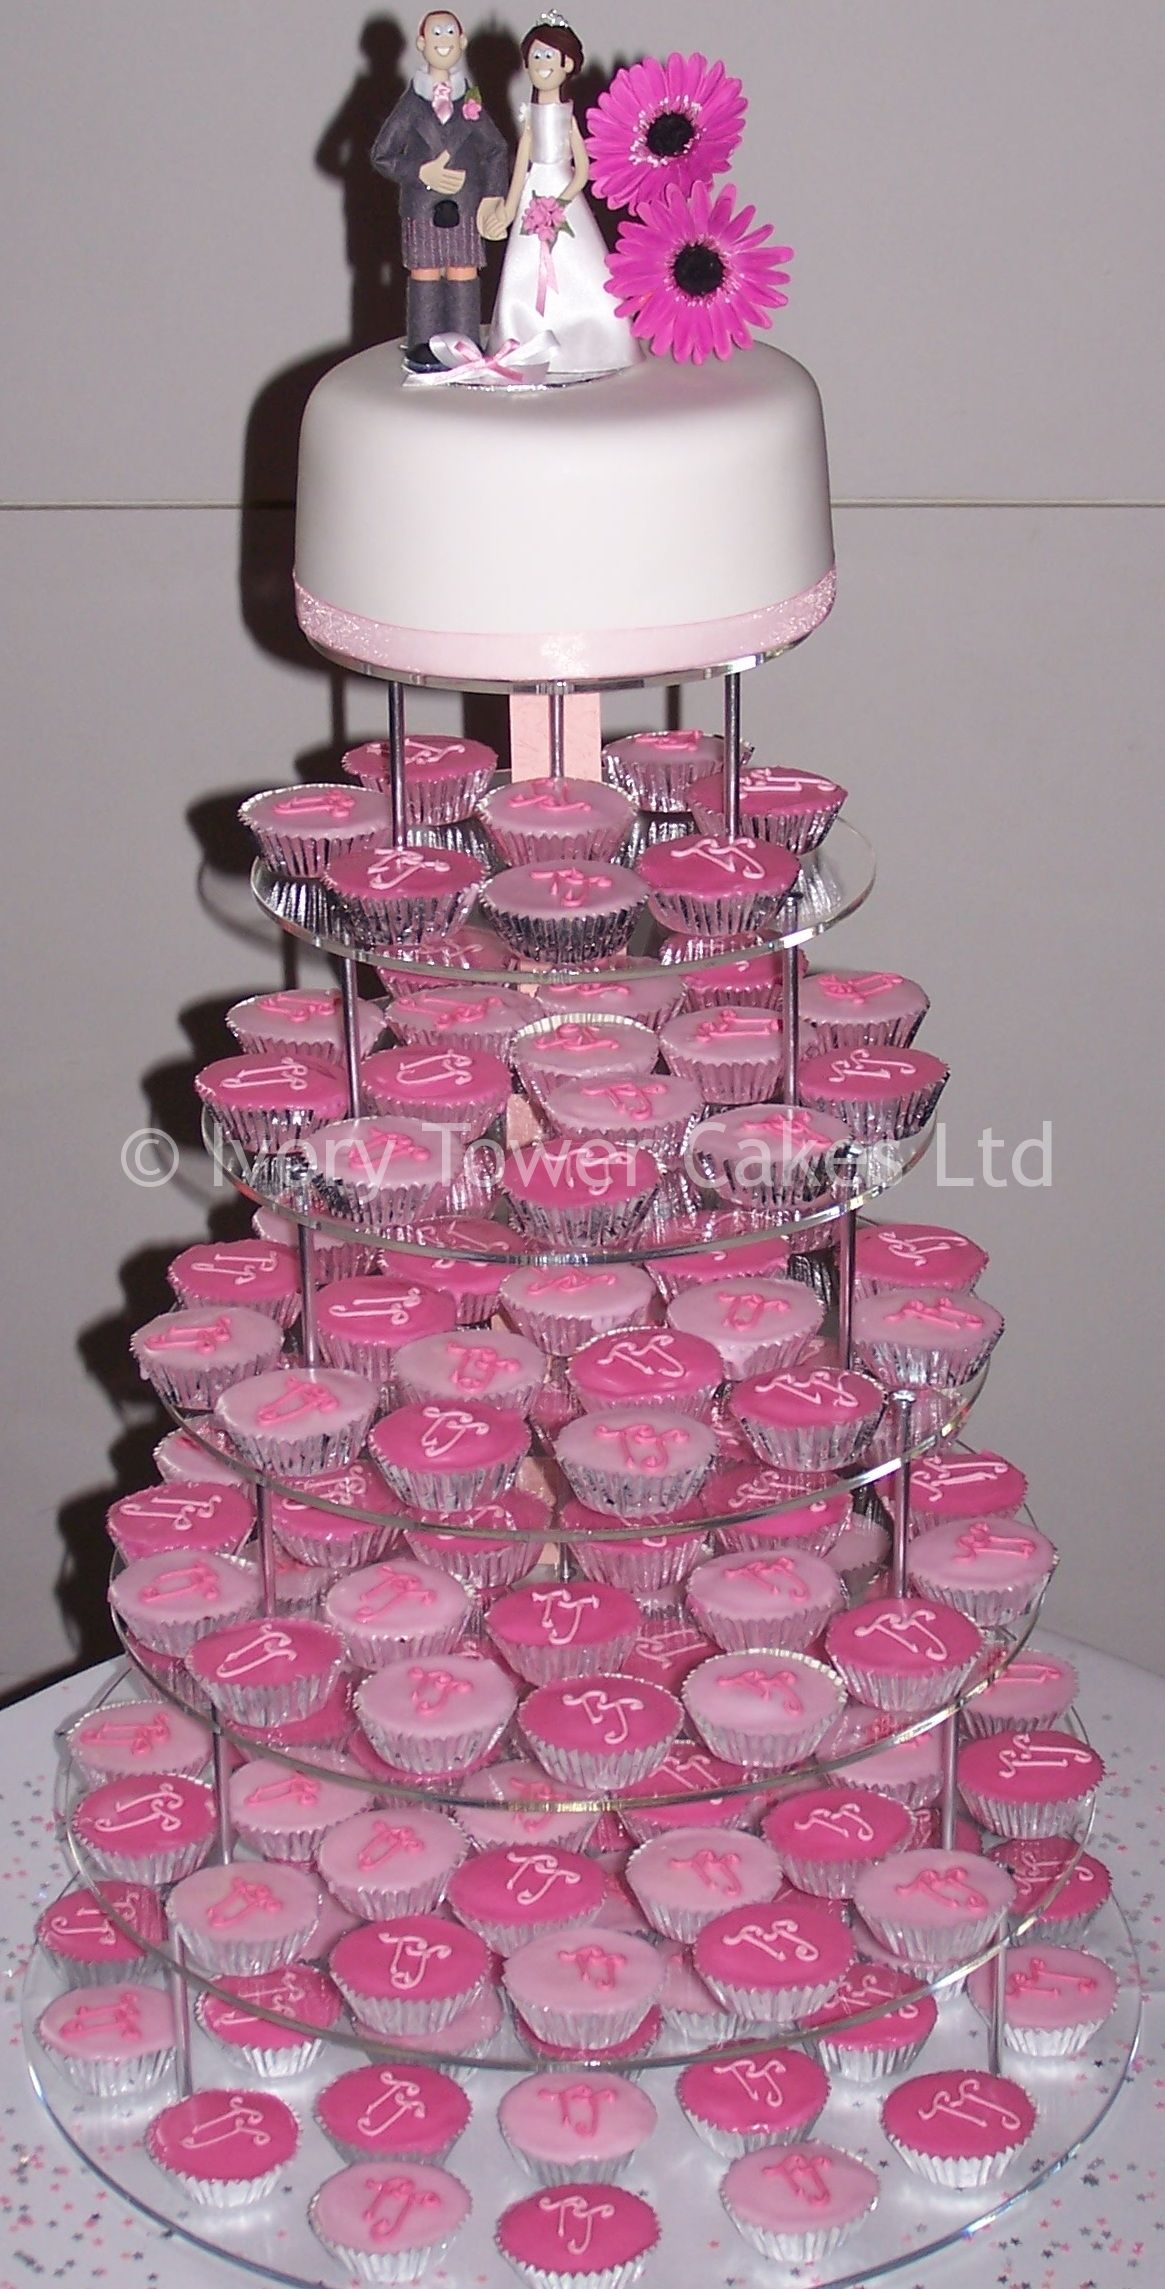 Wedding Cake Ideas Without Fondant